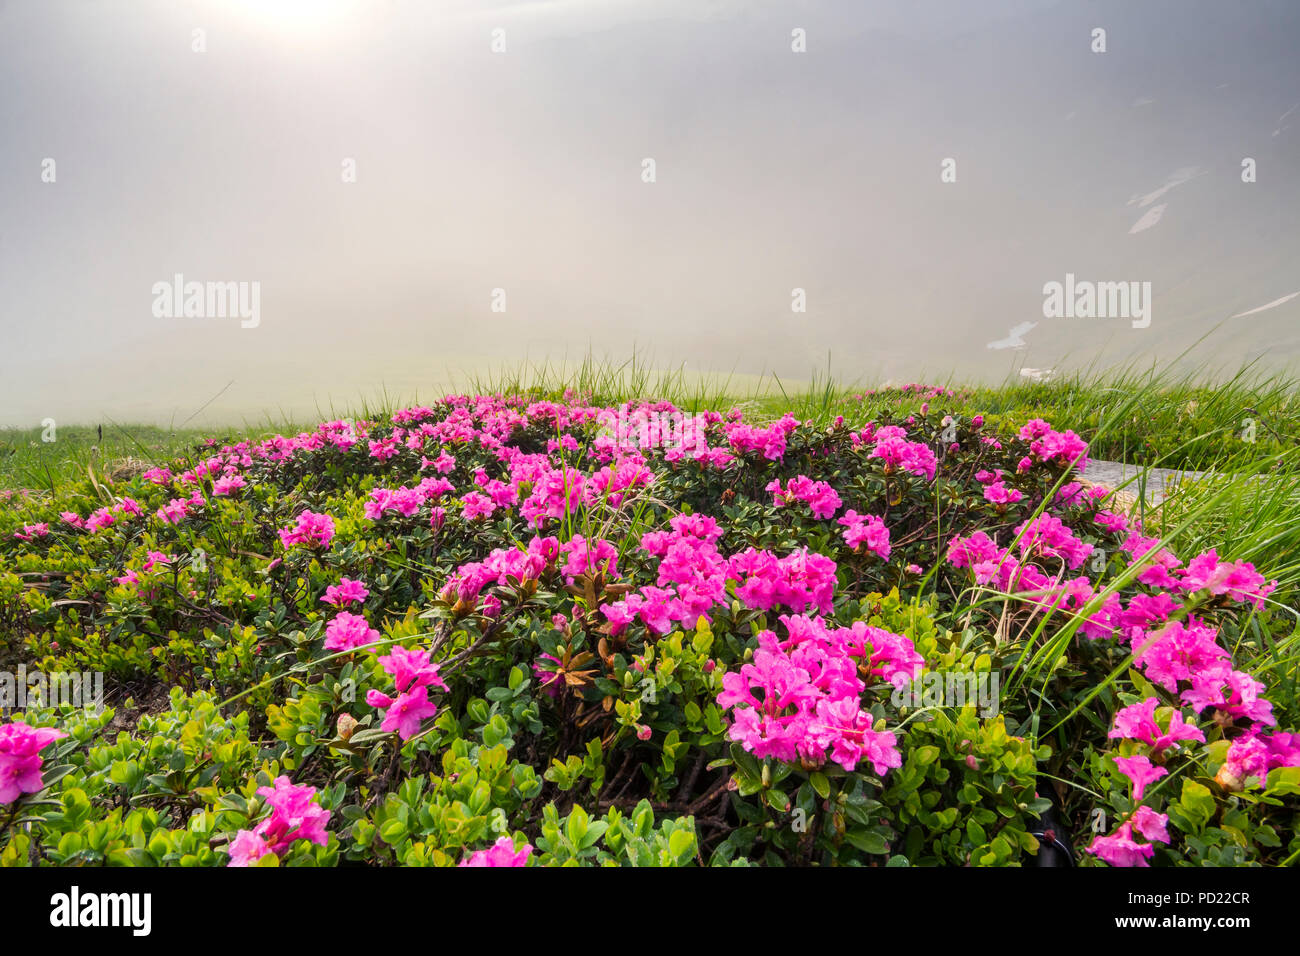 Lit By Sun Lavishly Blooming On Grassy Mountain Meadow Dense